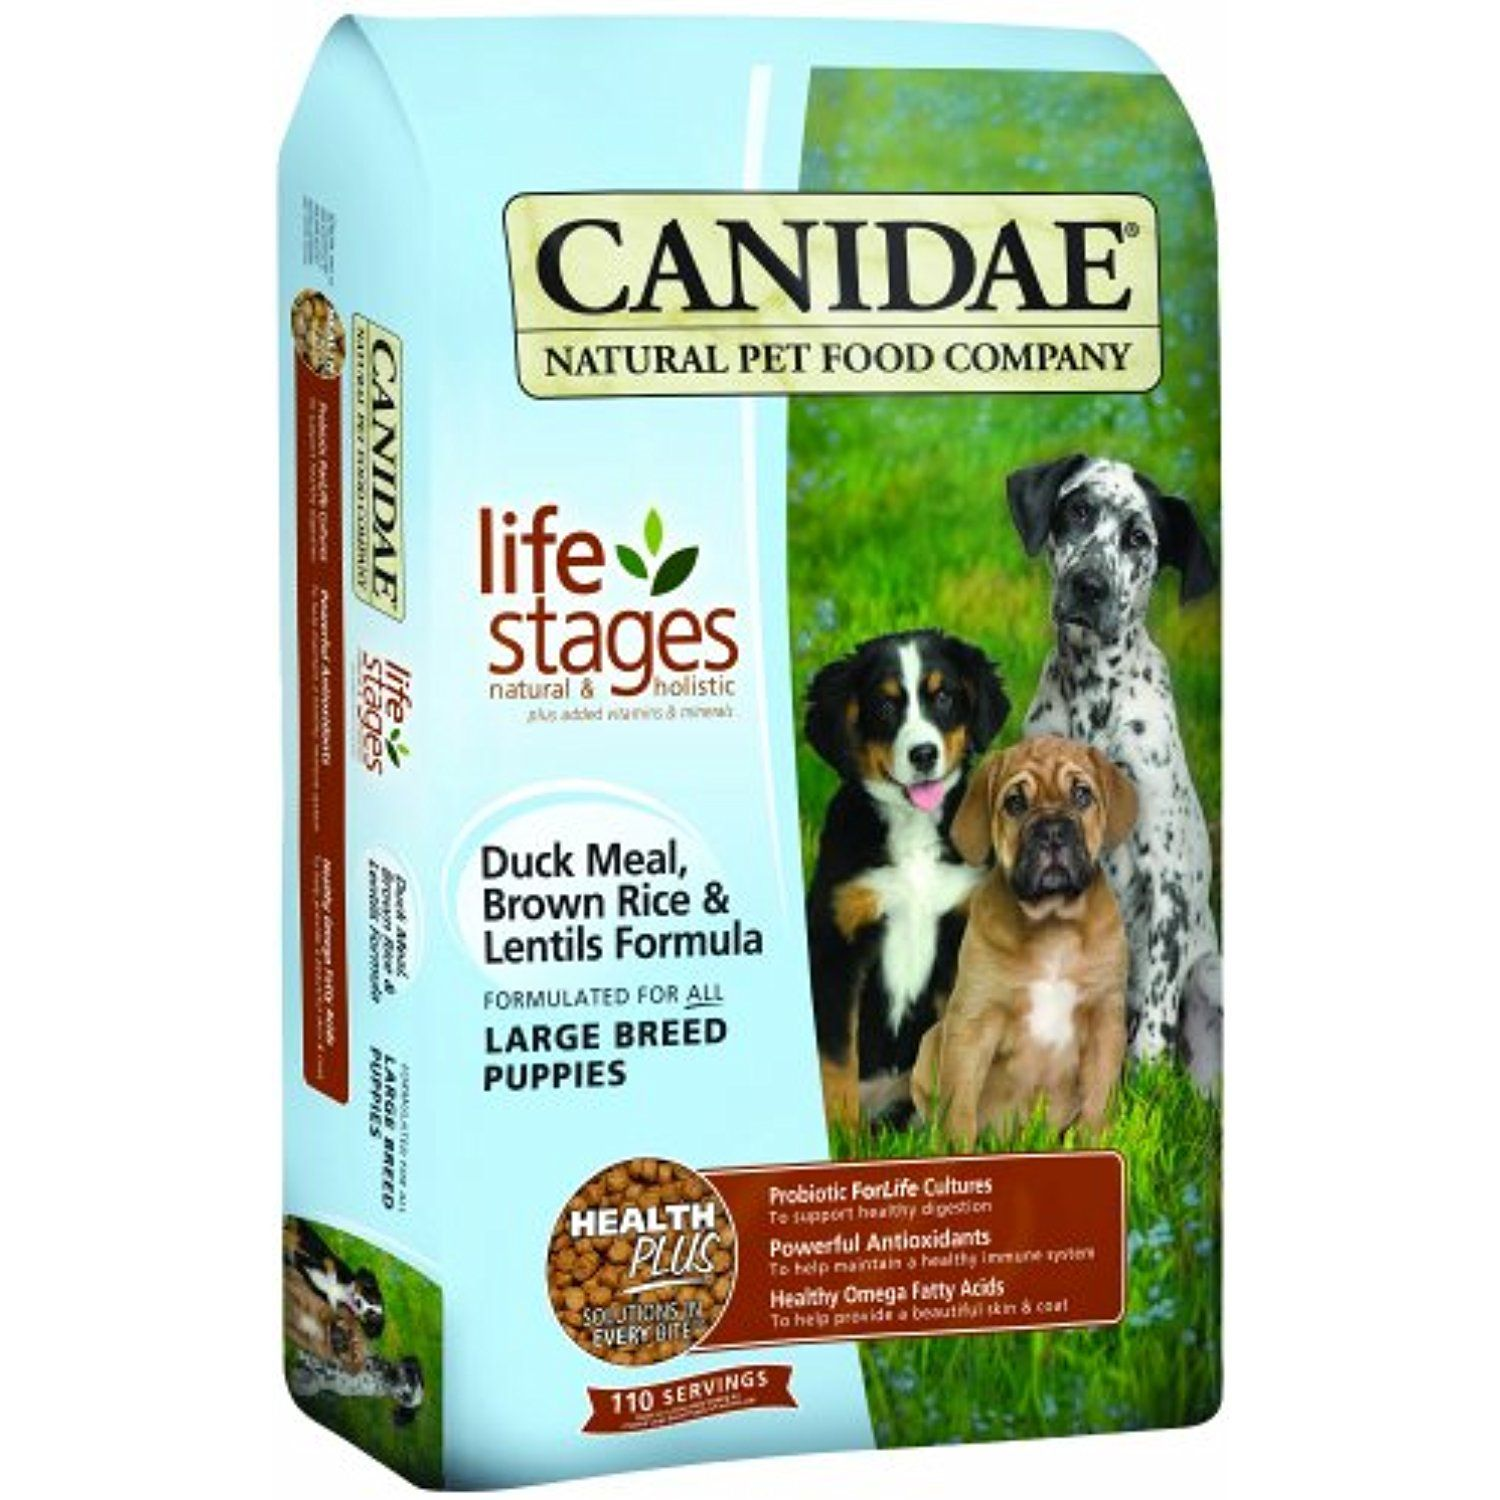 CANIDAE All Life Stages Large Breed Puppy Food Made With Duck Meal ...